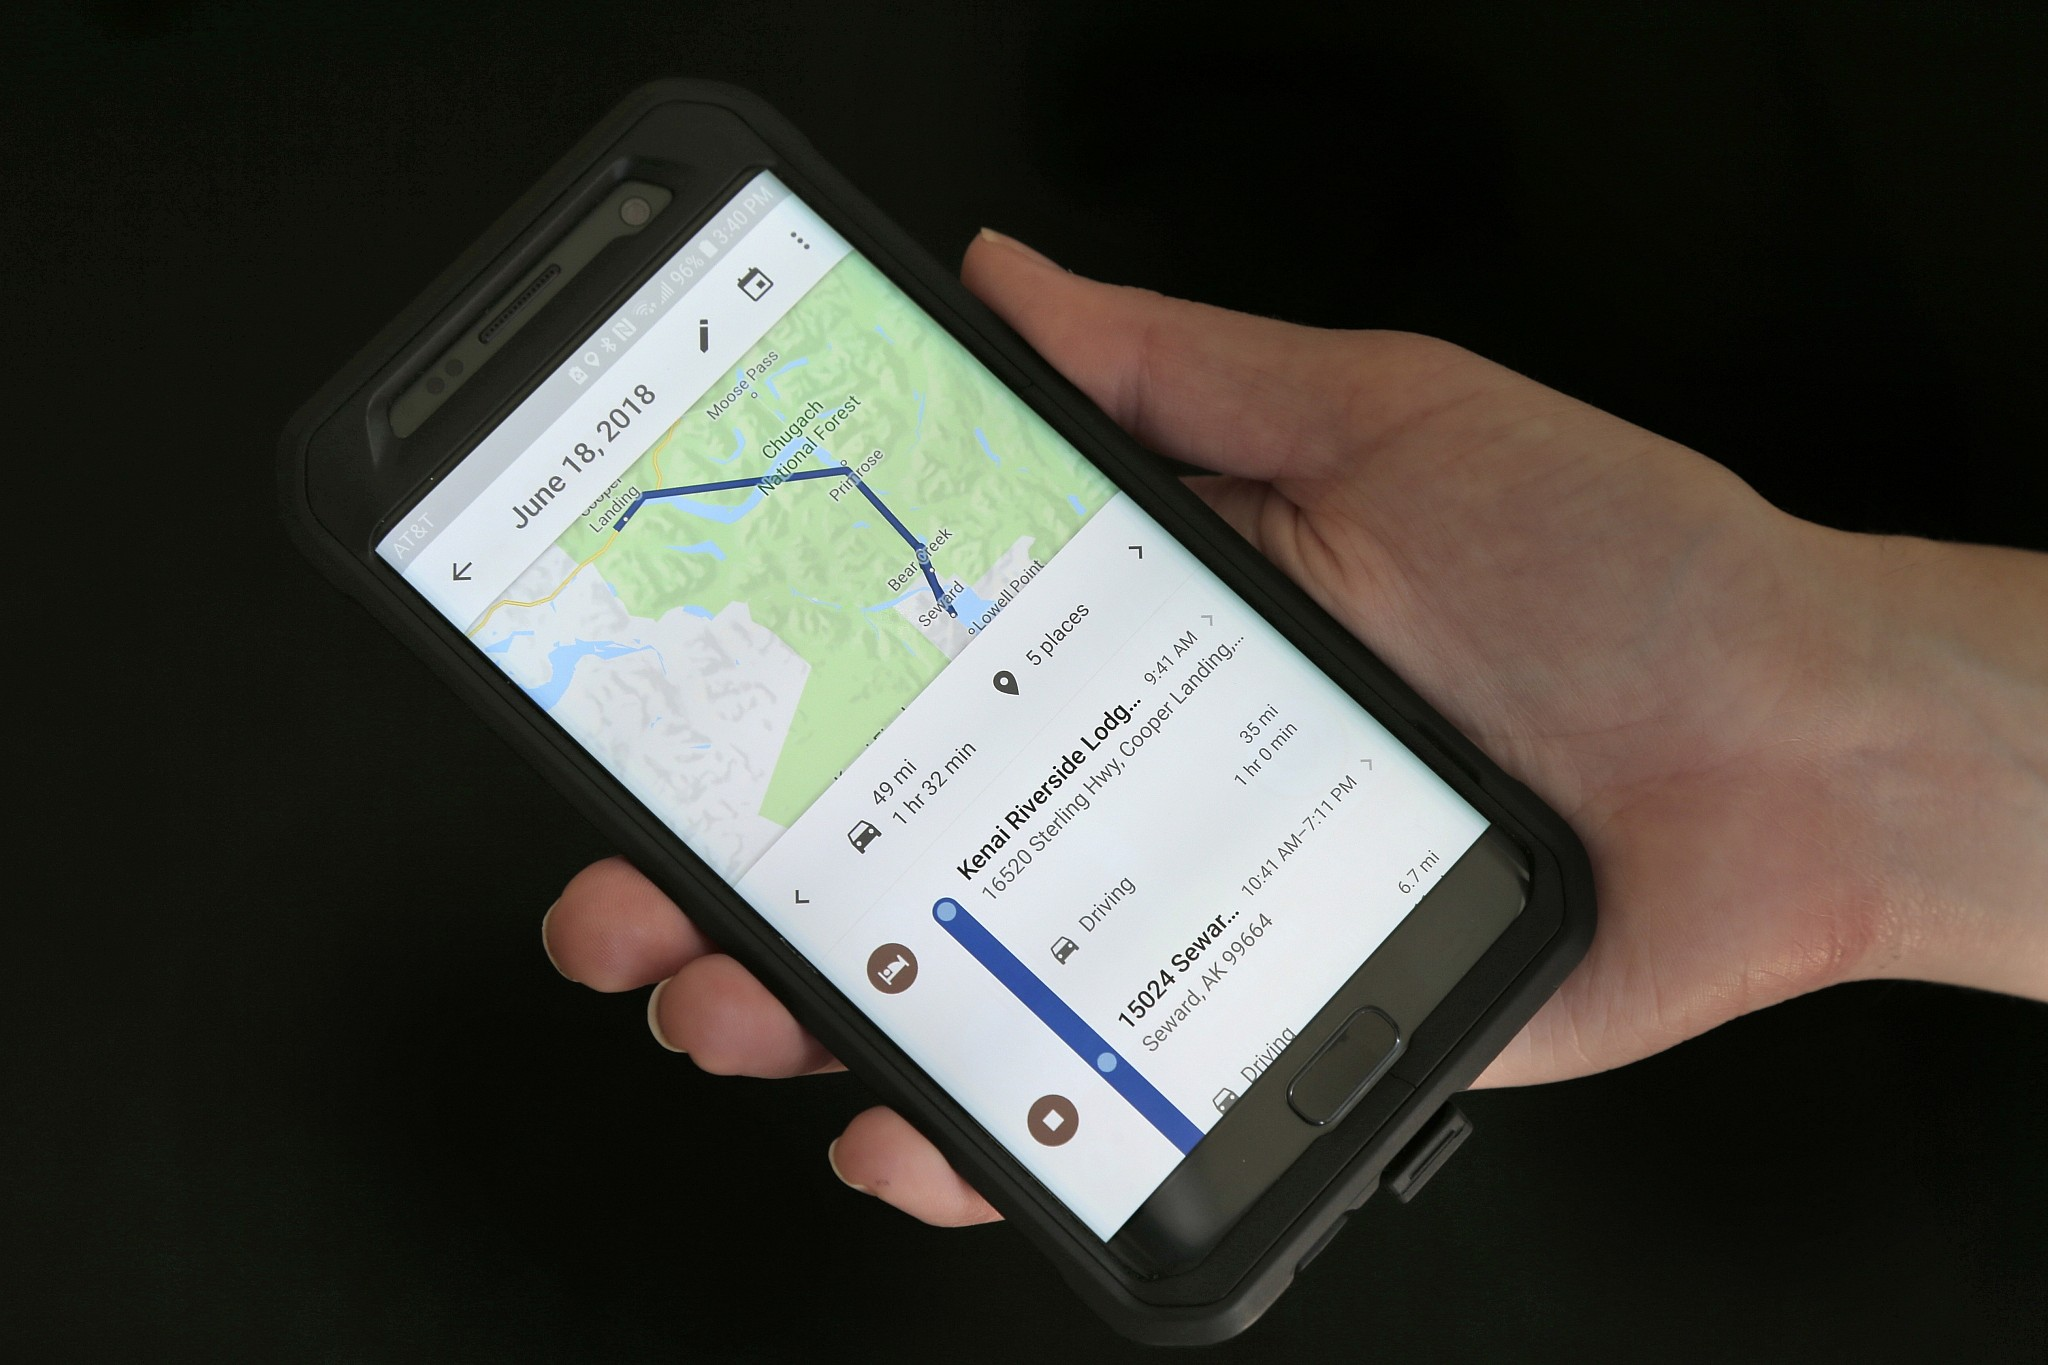 Google admits it tracks users, but says its to improve experience